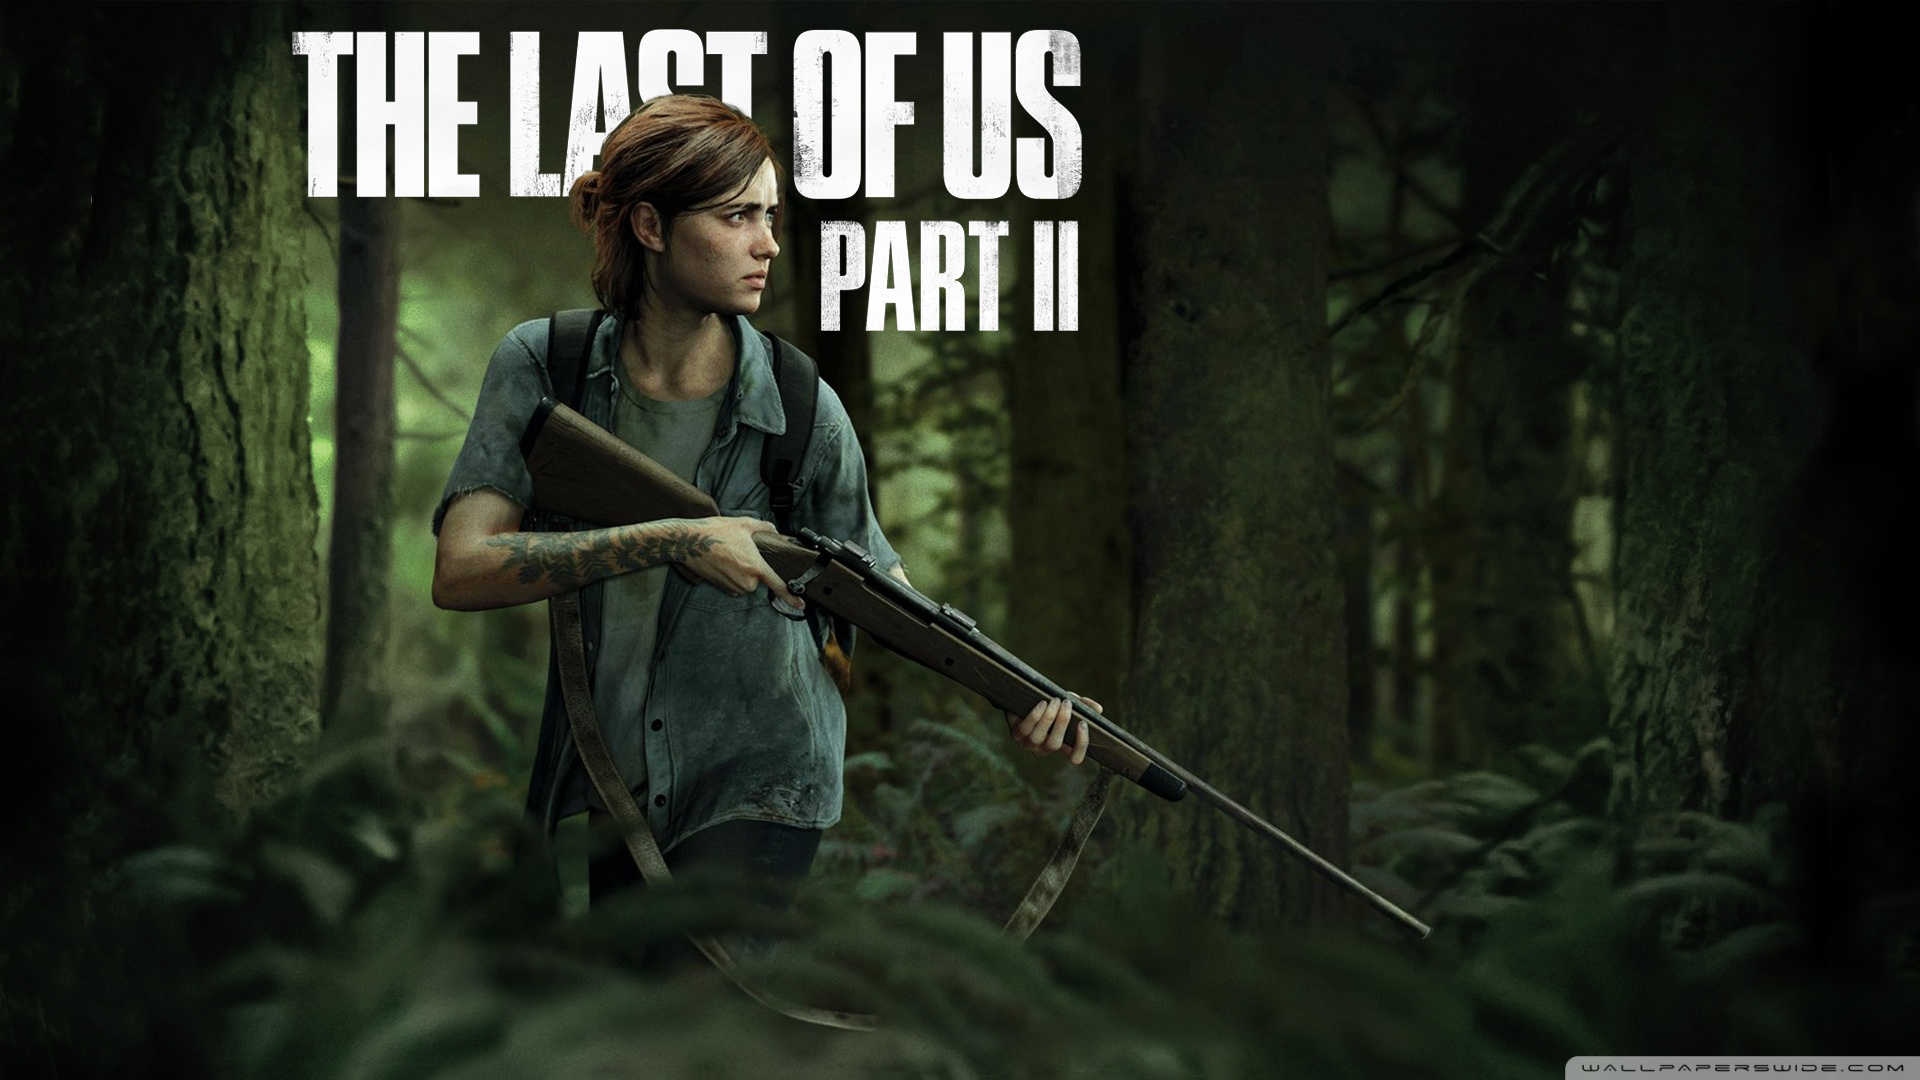 Free Download The Last Of Us Part 2 4k Hd Desktop Wallpaper For 4k